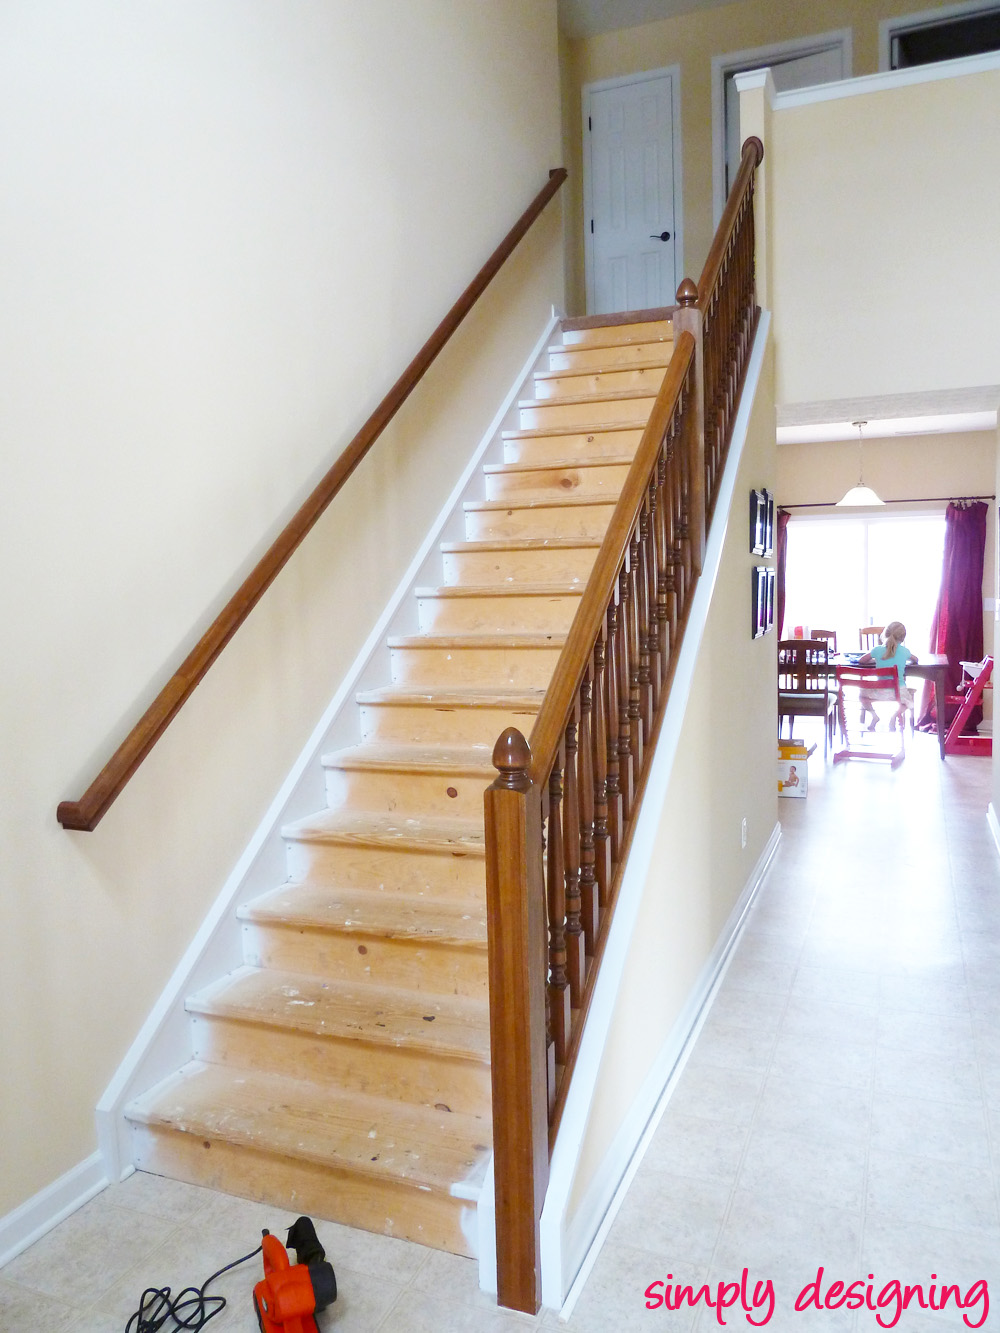 Redo Stairs How To Remove Carpet And Prep Stair Risers | Redoing Stairs With Wood